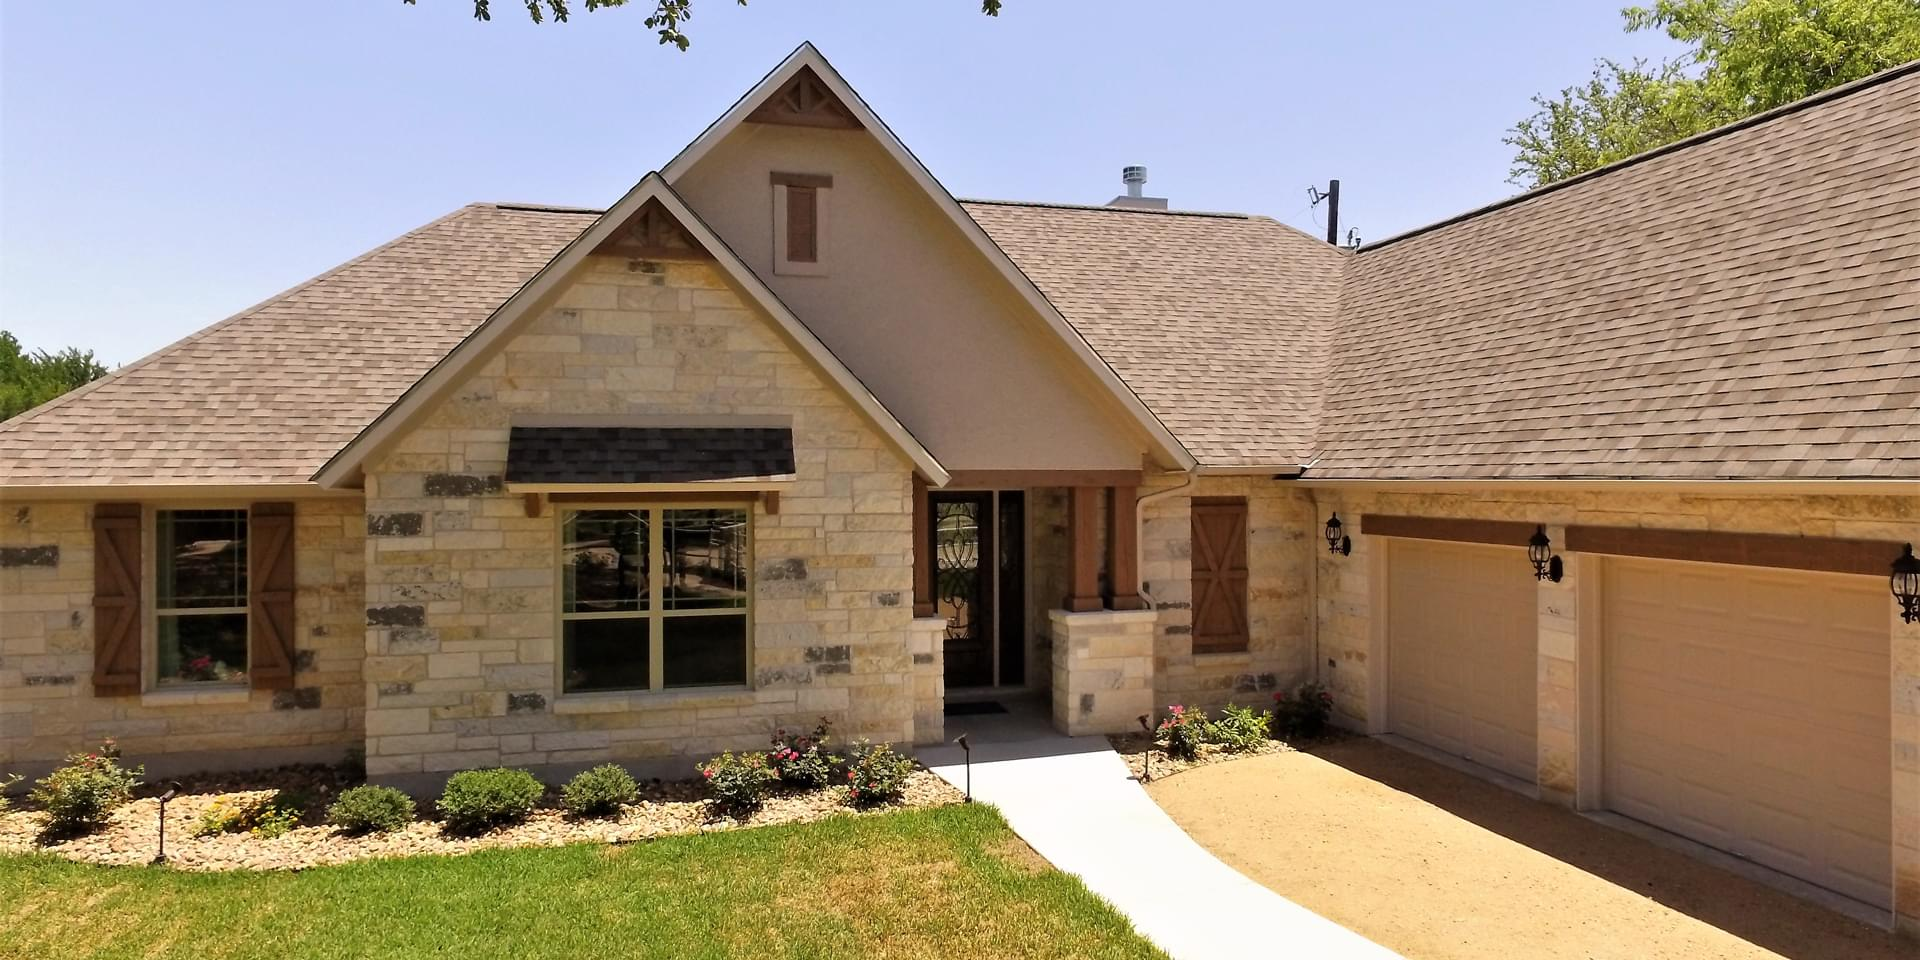 What are the Best Exterior Materials to Use in Texas?